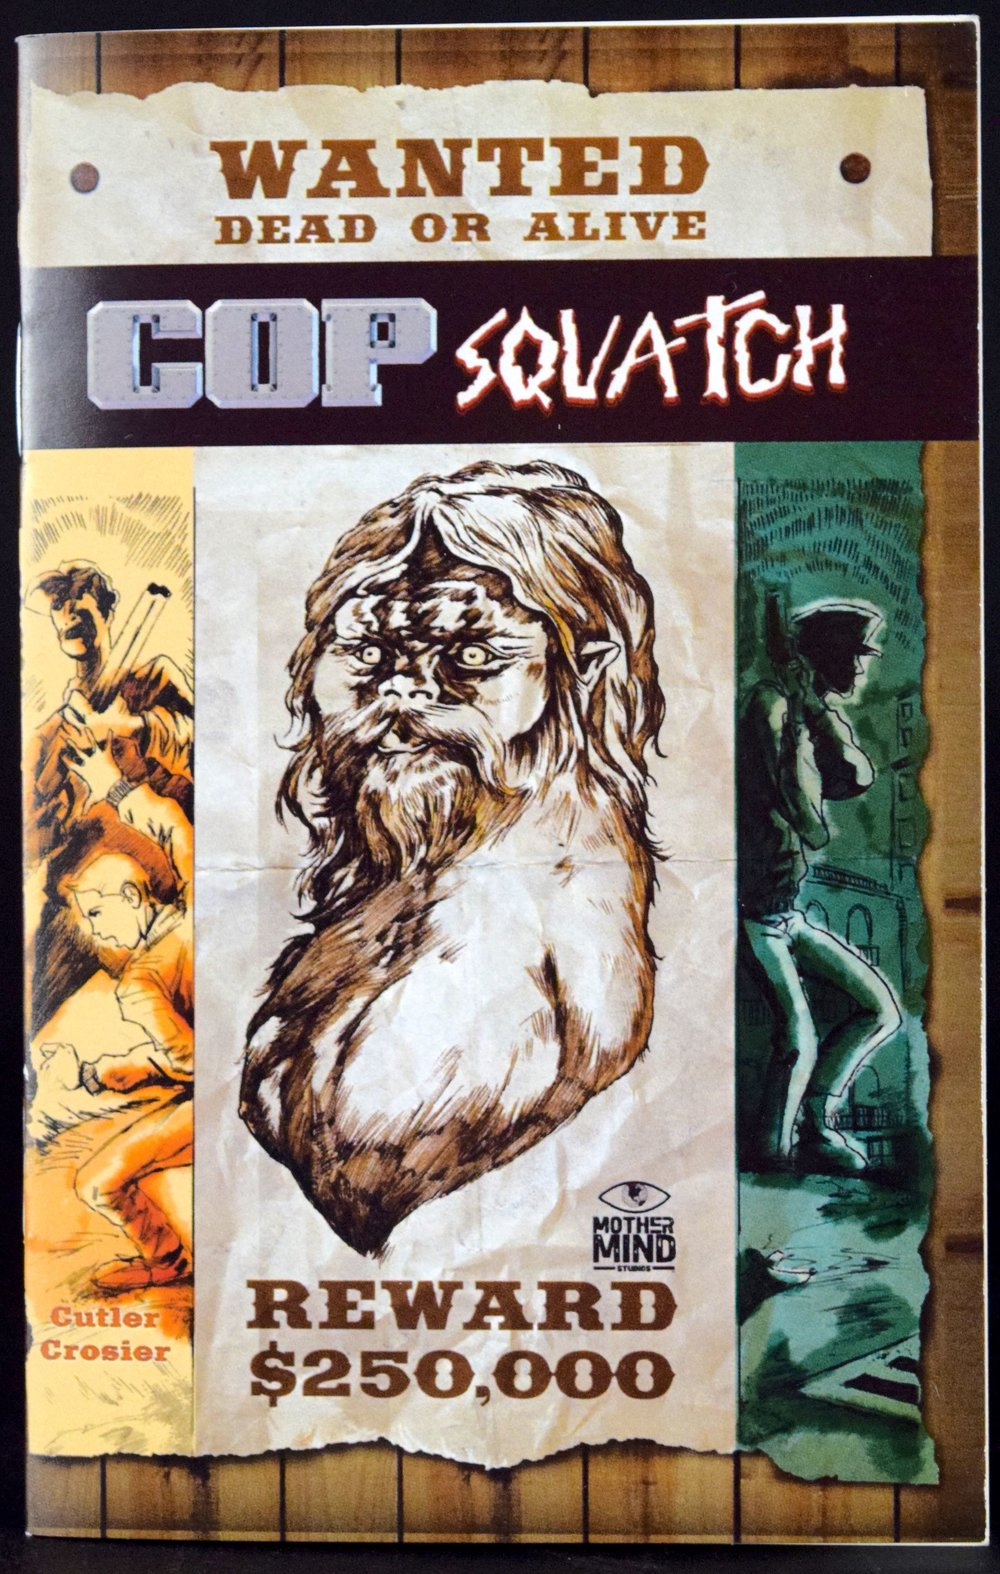 CopSquatch  mini-comic by  Allan Elijah Cutler  &  Daniel Crosier .